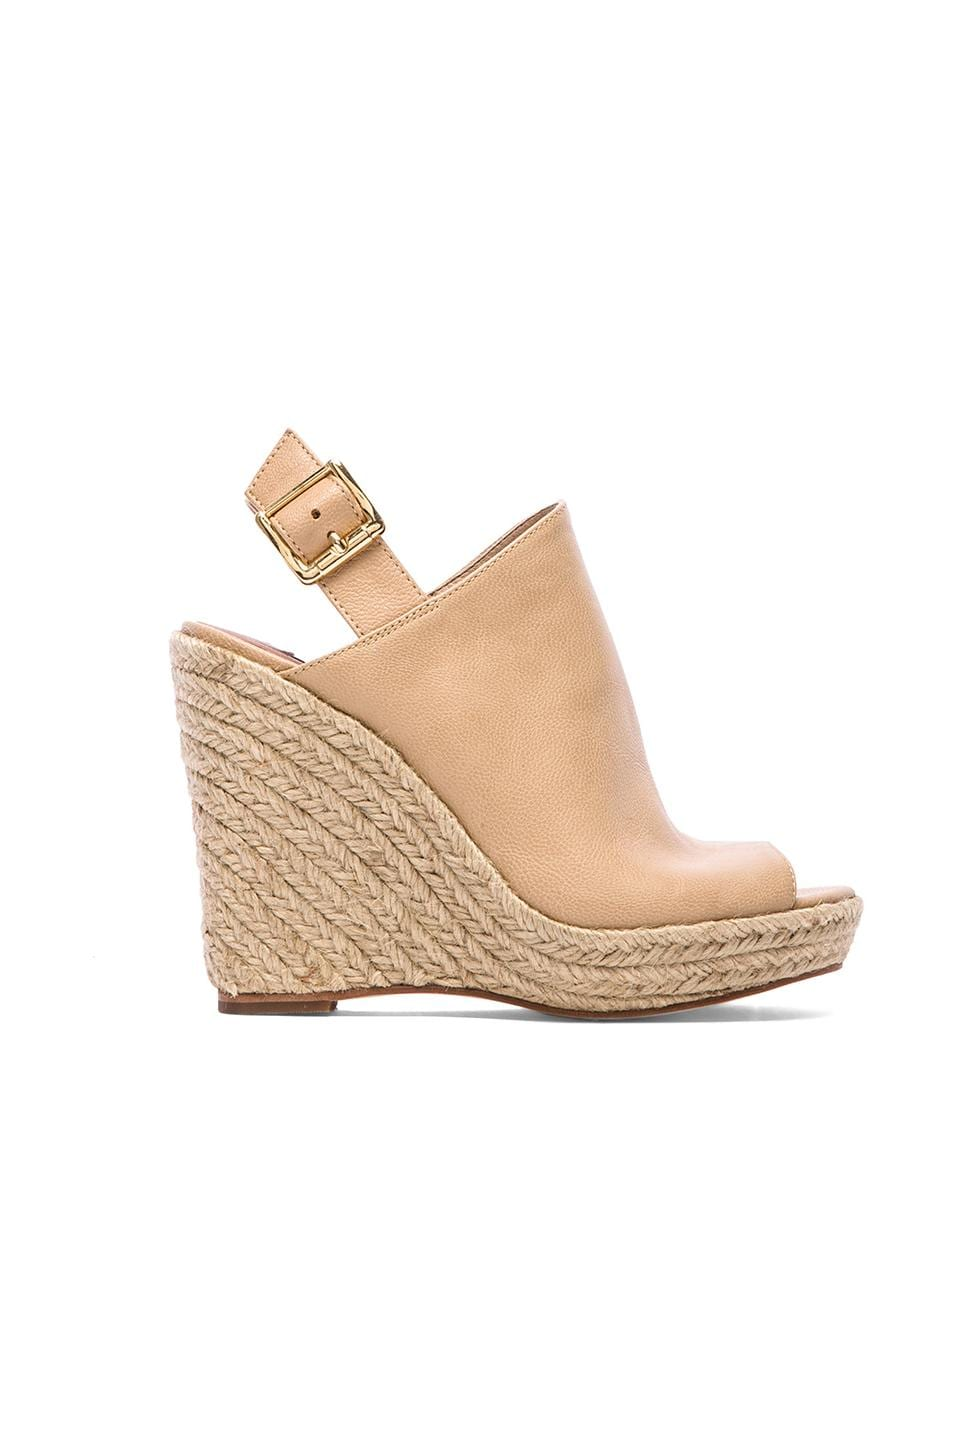 Steve Madden Corizon Wedge in Natural Leather